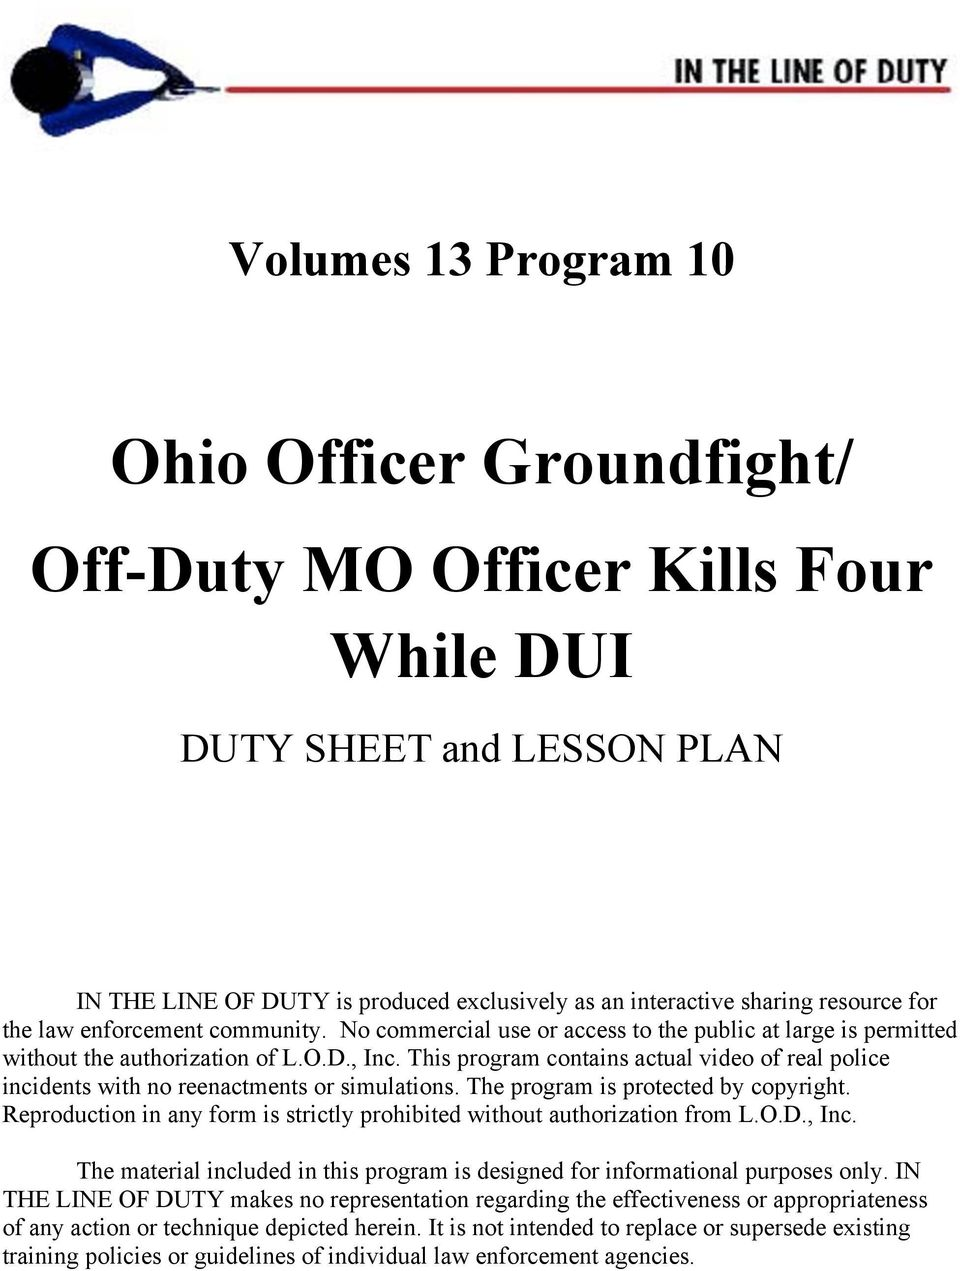 Ohio Officer Groundfight/ Off-Duty MO Officer Kills Four